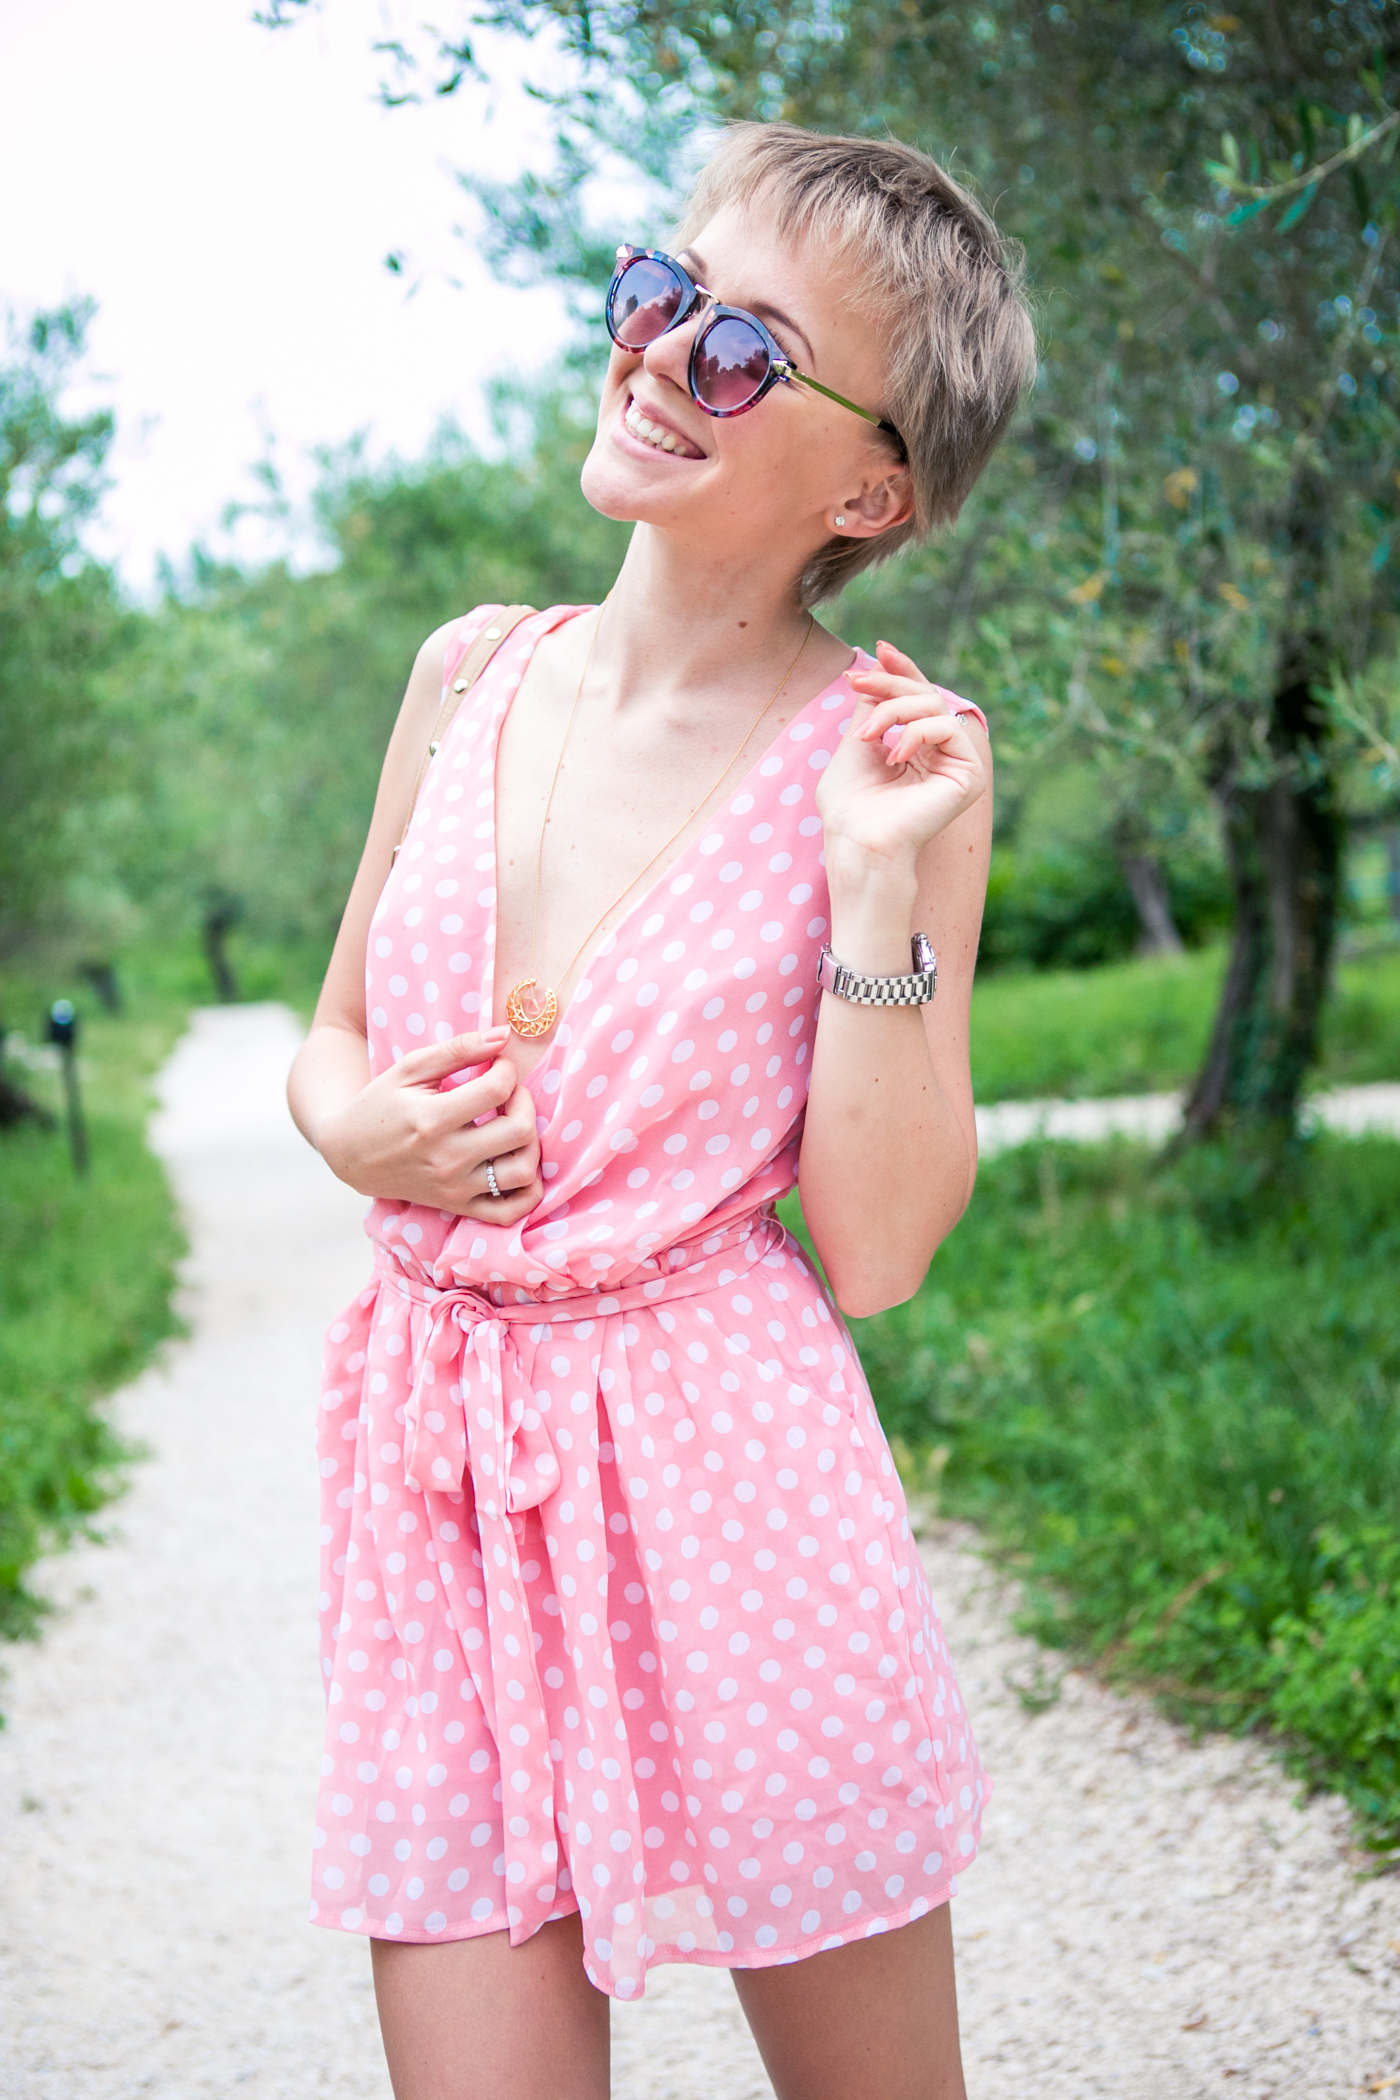 thecablook darya kamalova fashion blog street style sirmione italy verona jumpsuit rompers polka dots pixie cut short hair zanotti sandals rebecca minkoff bag vj style sunnies sunglasses outfit-134